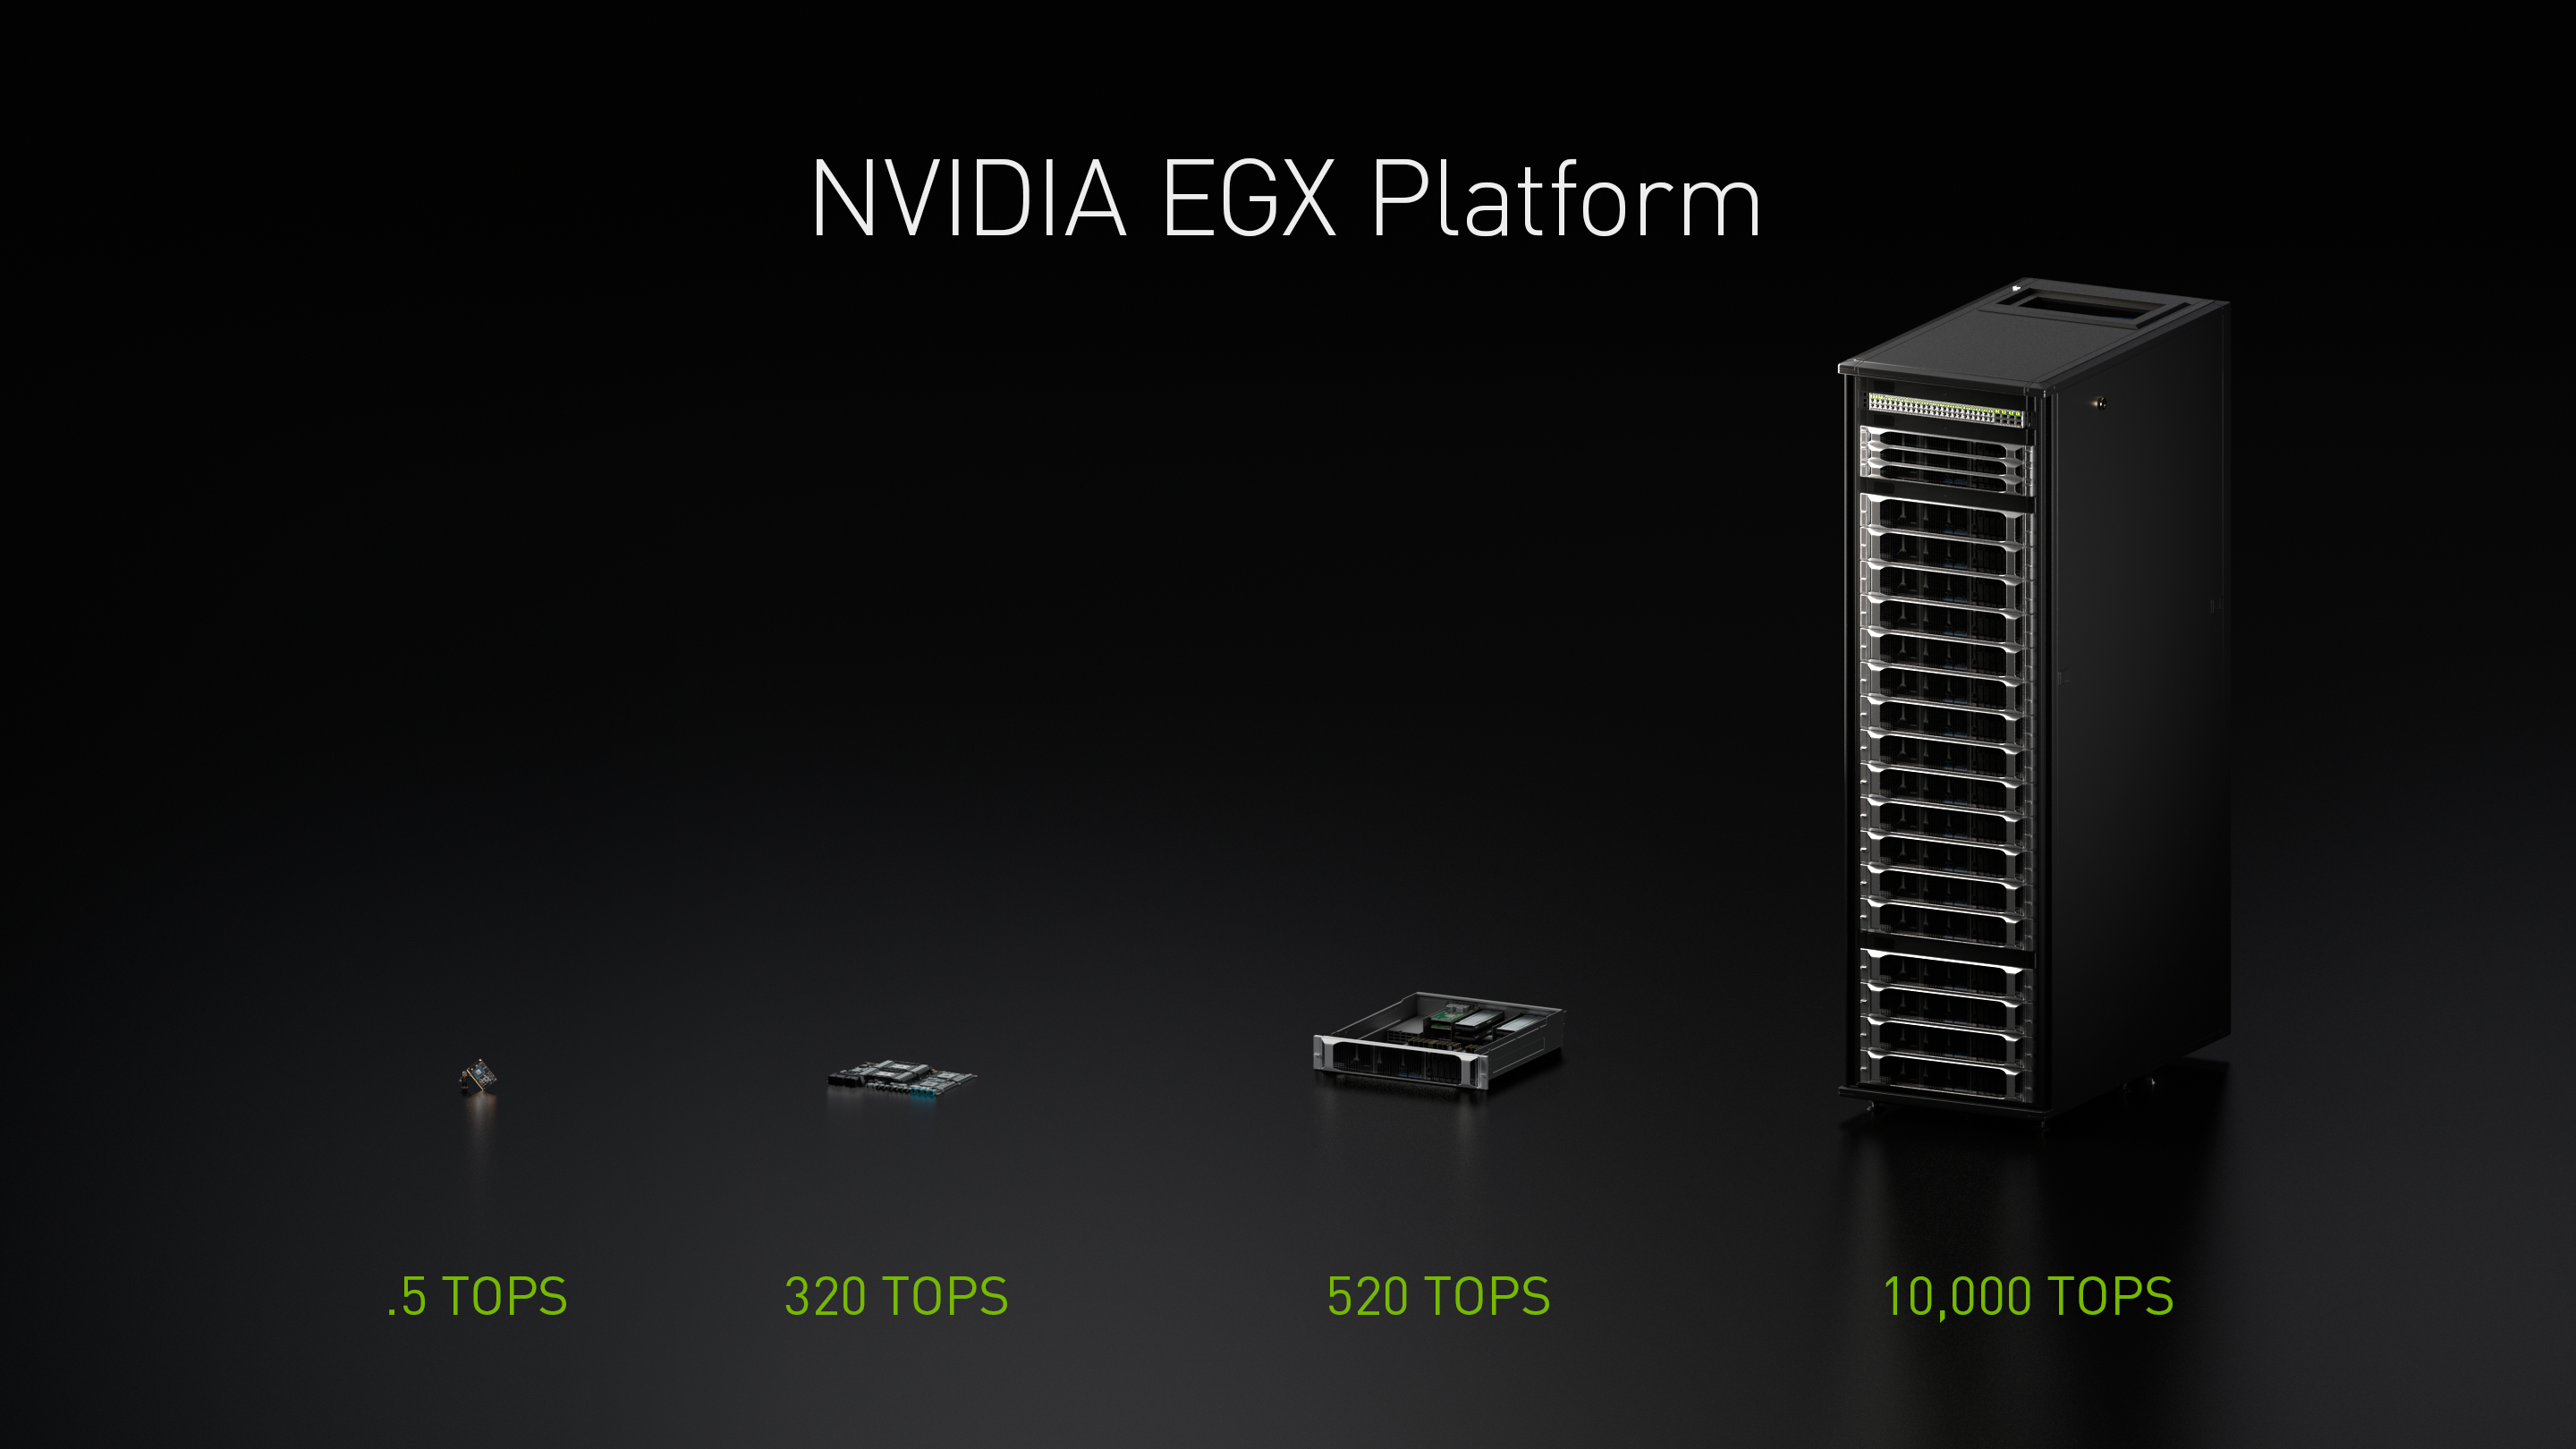 NVIDIA Launches Edge Computing Platform to Bring Real-Time AI to